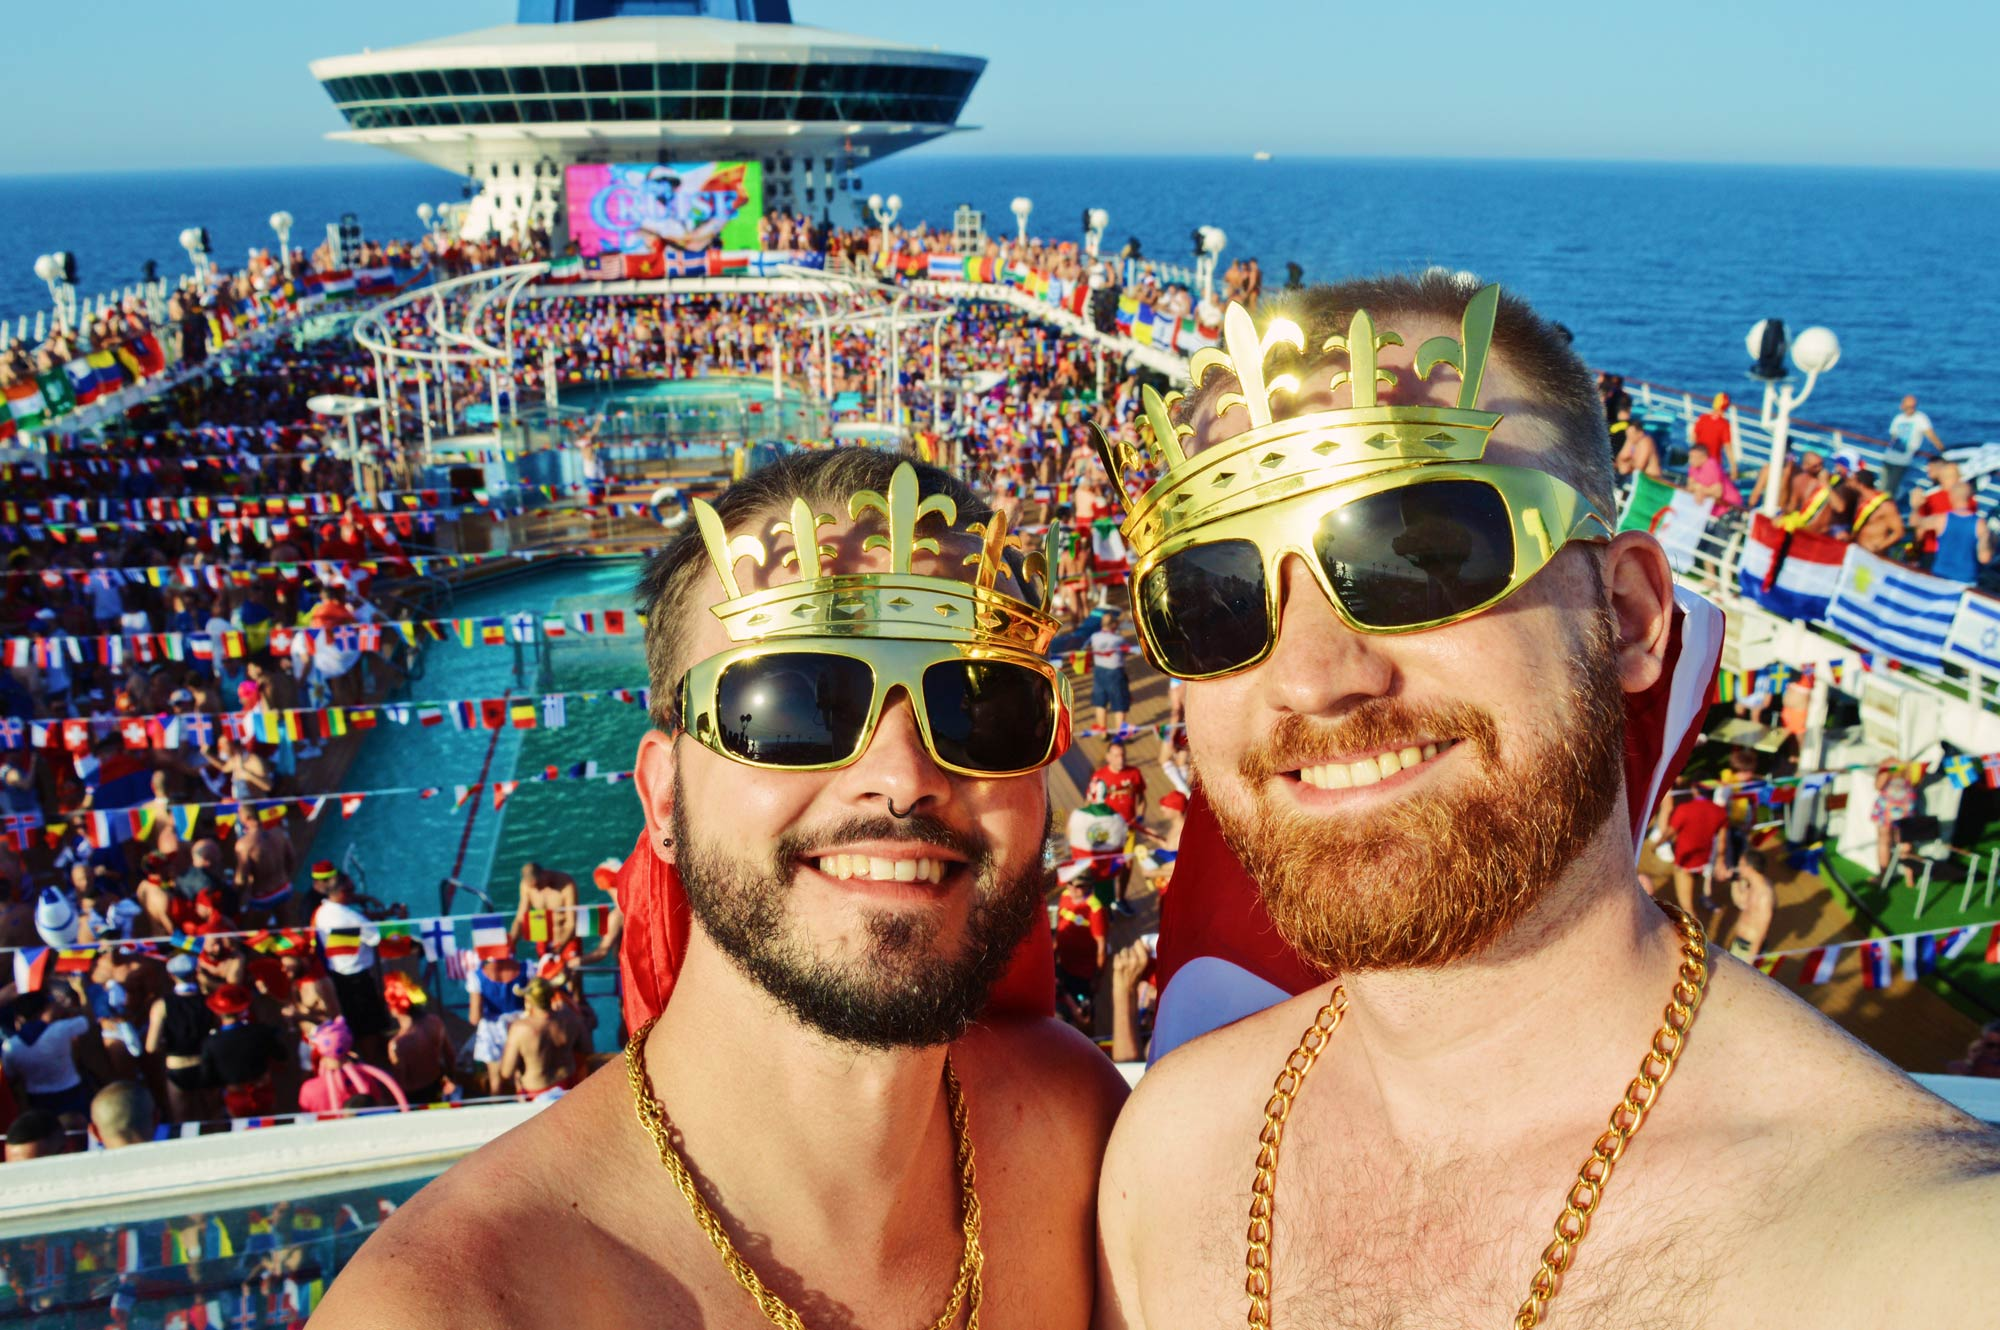 Gay News The Cruise 2017 La Demence © CoupleofMen.com